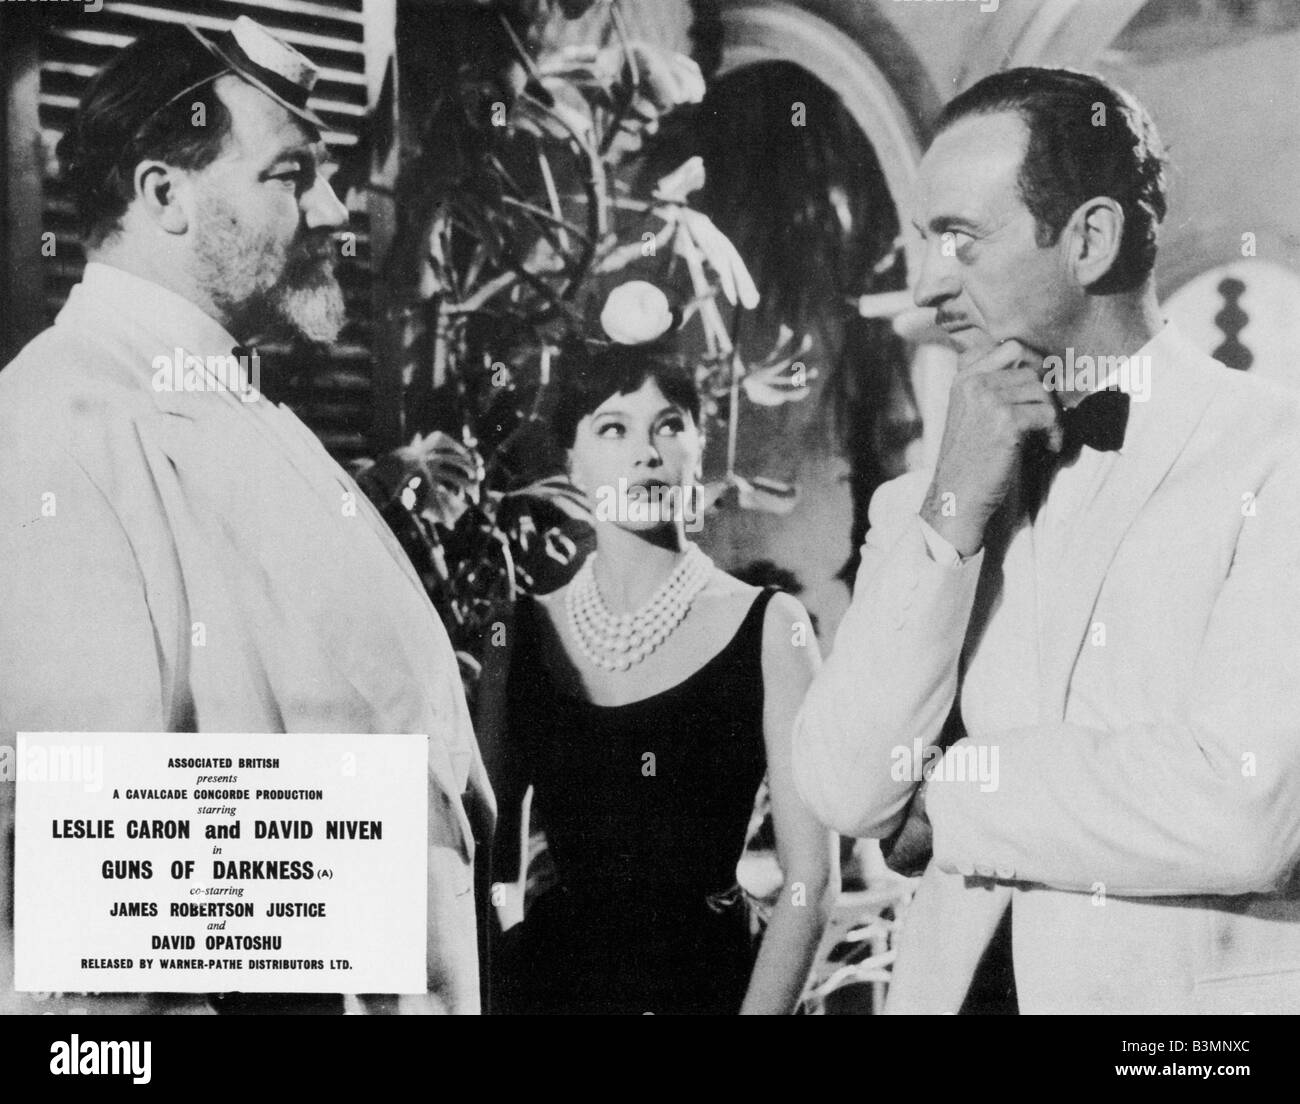 GUNS OF DARKNESS  1962 ABP film with from l: James Robertson Justice, Leslie Caron and David Niven - Stock Image